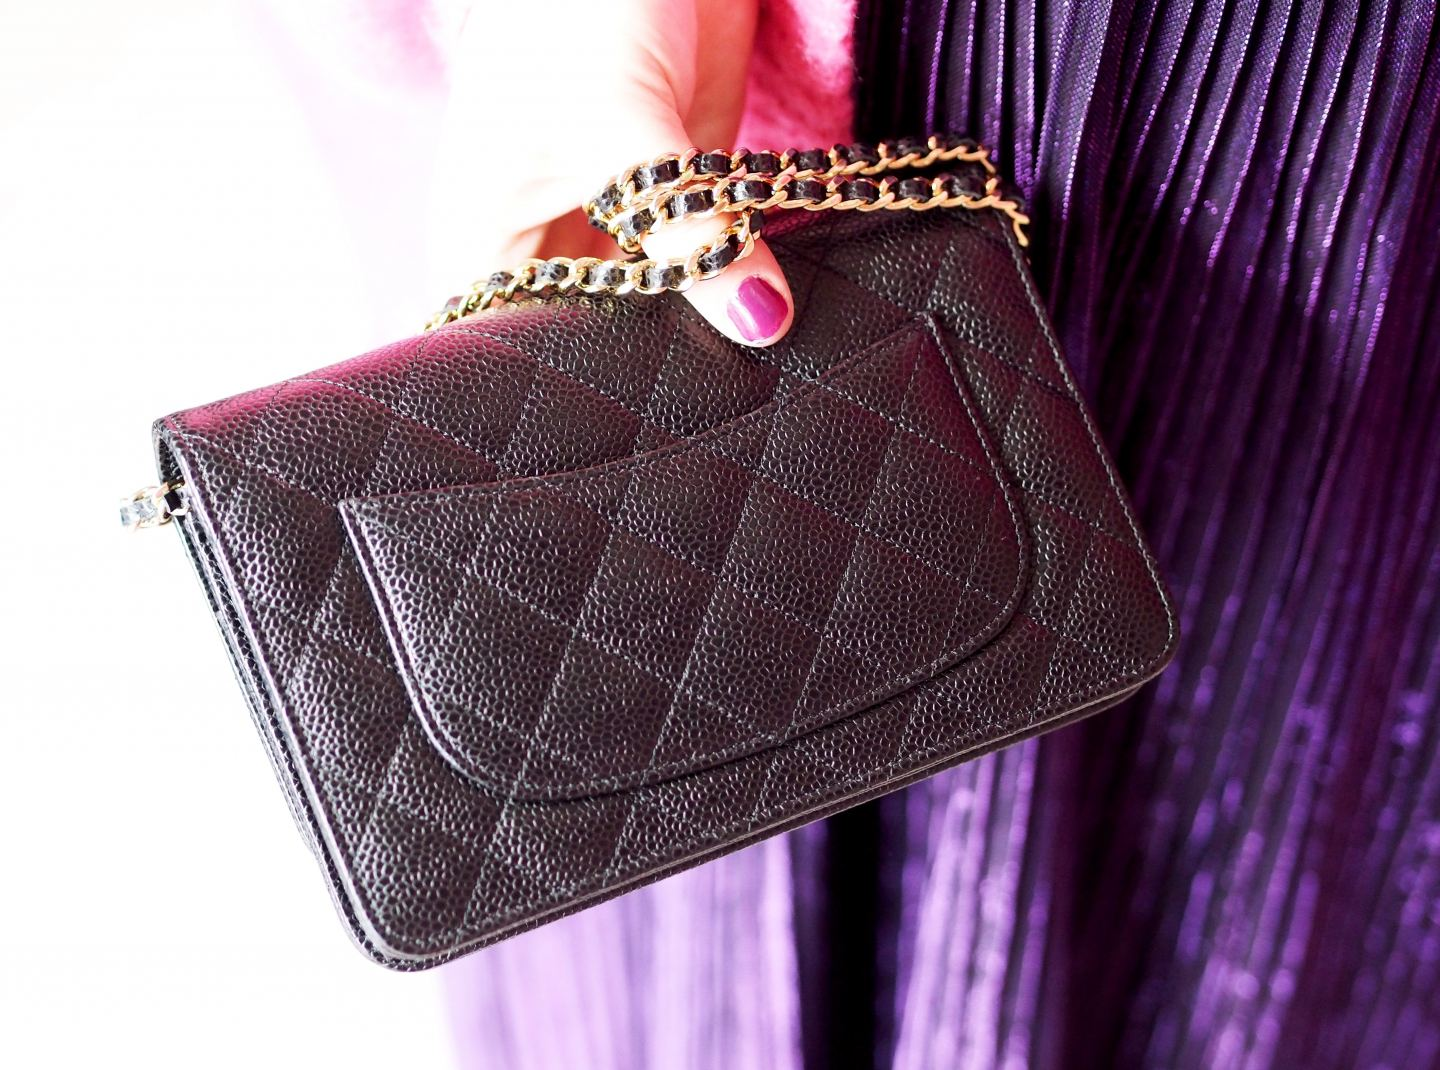 chanel wallet on chanel handbag black caviar leather fashion for lunch blog